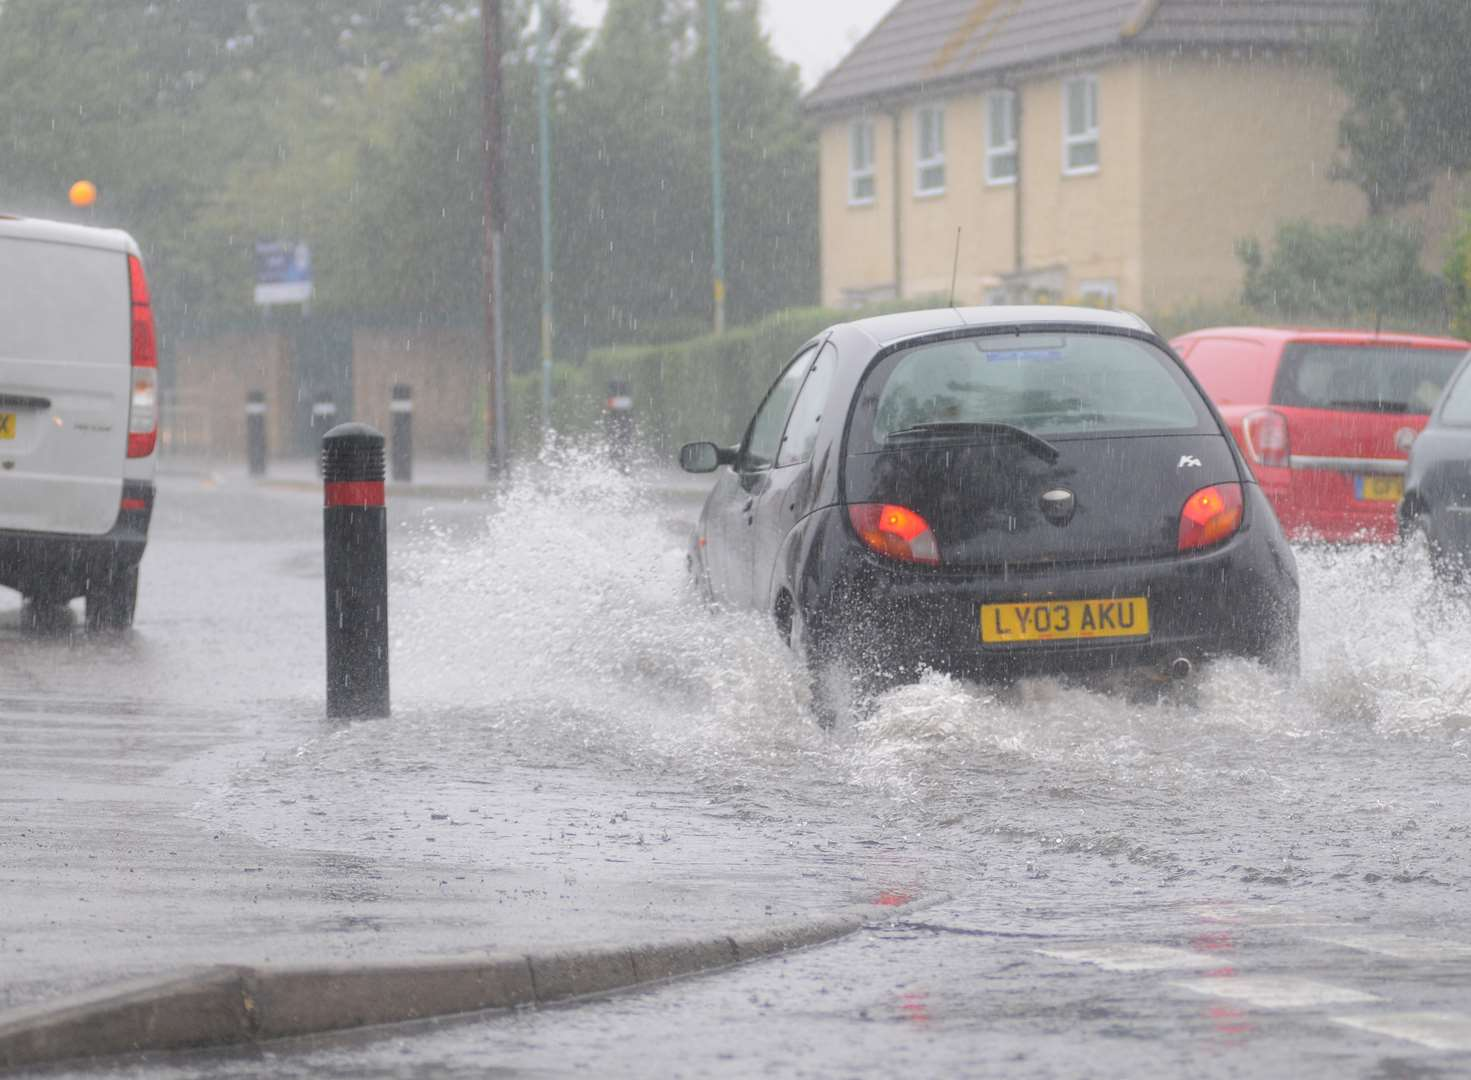 Flood warnings issued for several areas